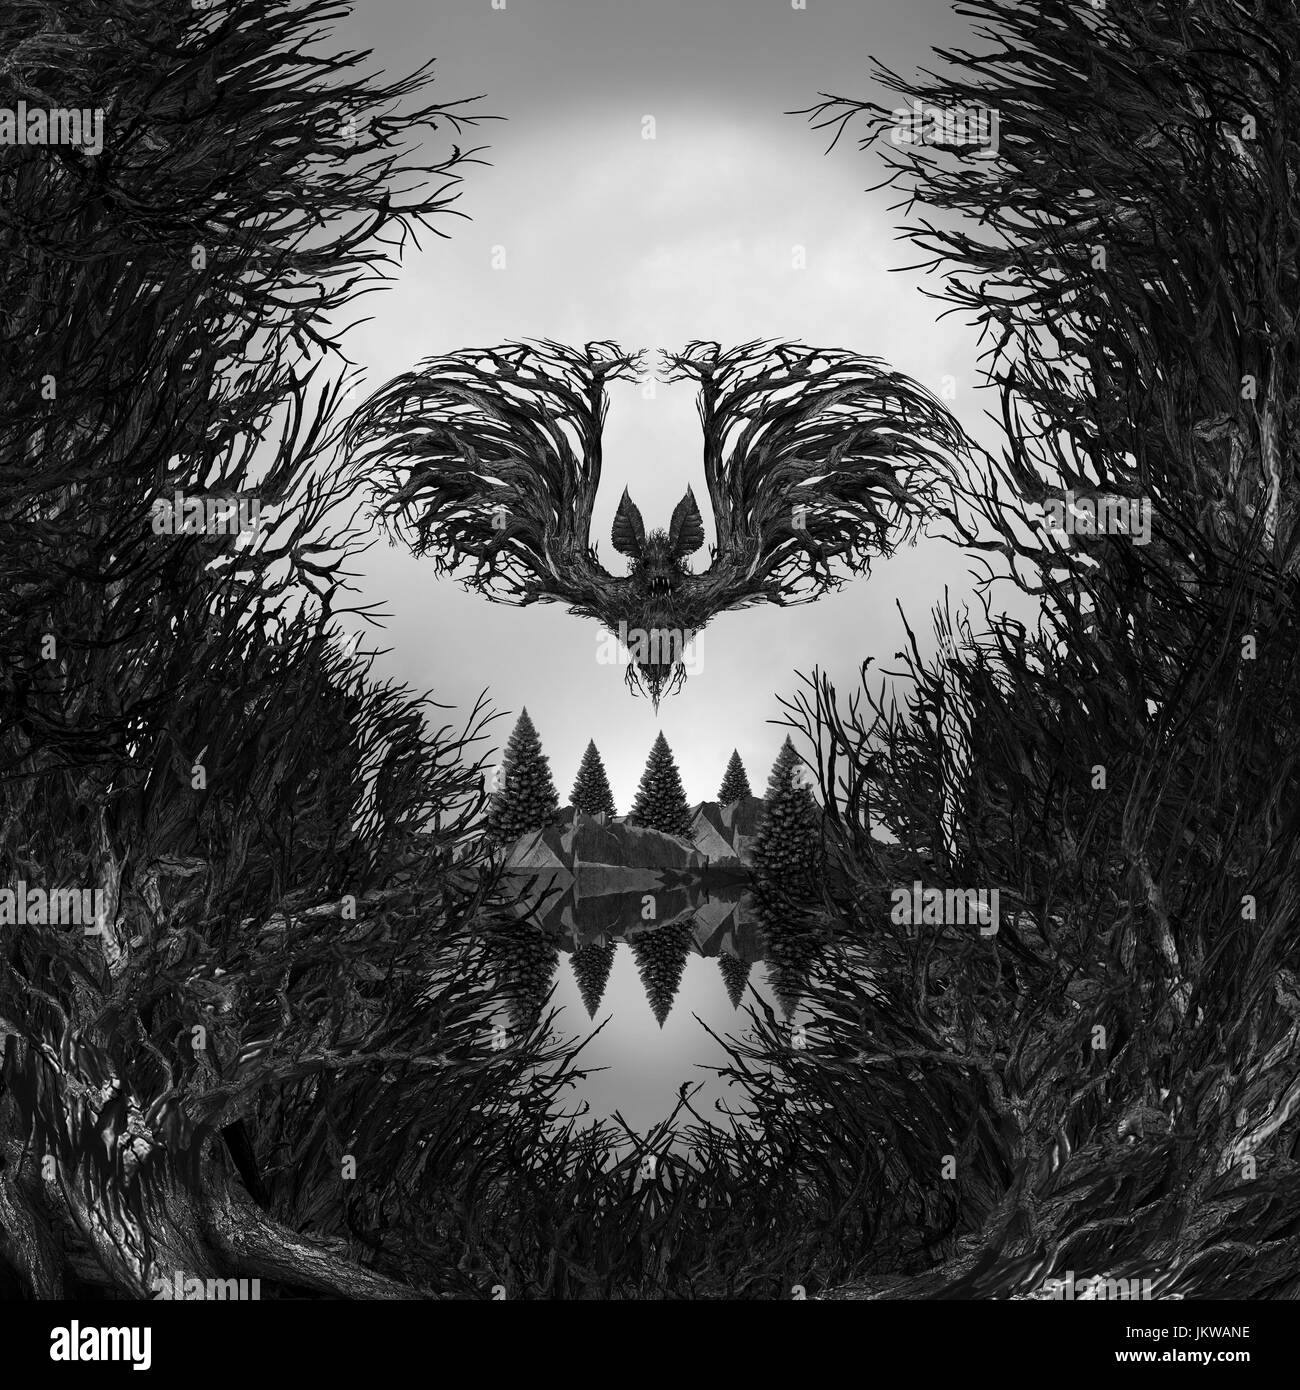 Scary Skull background as a surreal haunted forest with dead trees and mountain shaped as a possessed skeleton head. - Stock Image